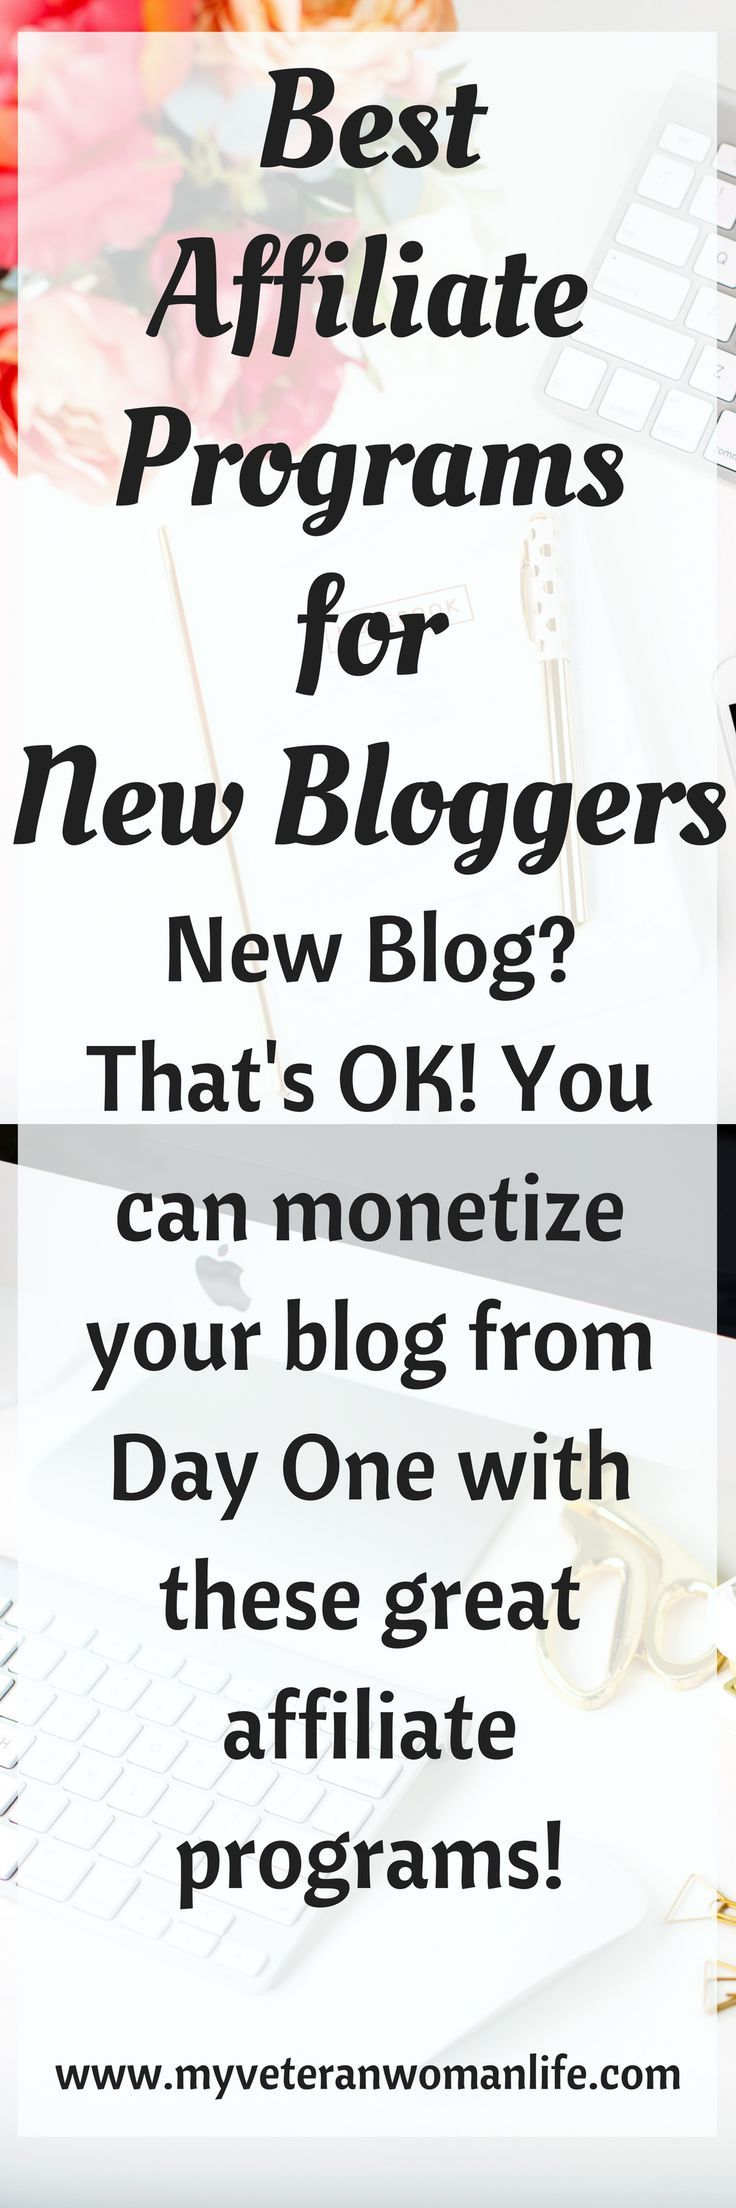 You don't need to wait months to start monetizing your blog. Start earning money from DAY ONE with these great affiliate programs for new bloggers.